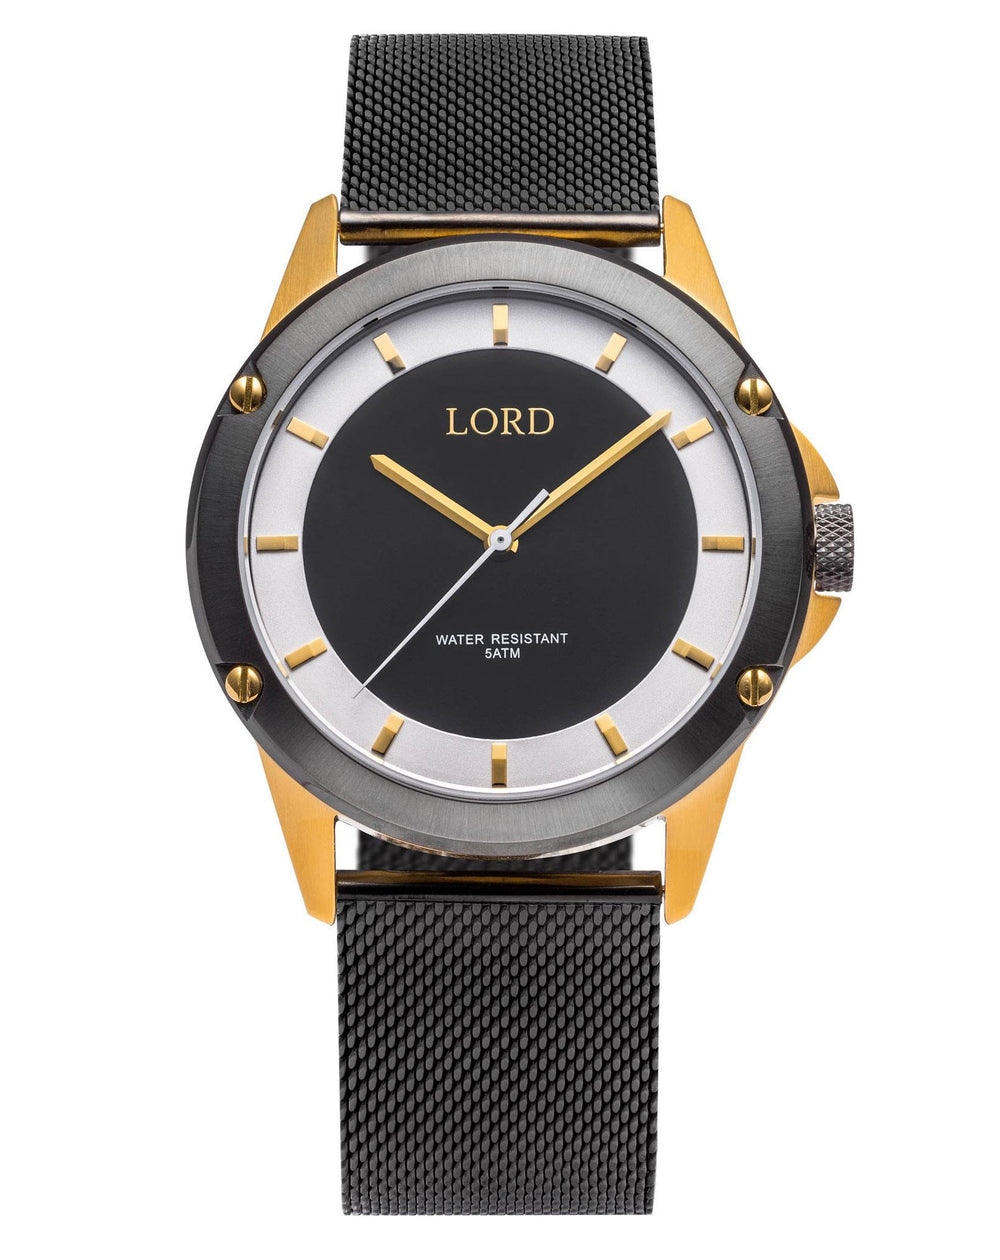 Black/White-Gold-Watch-Men's-Watches-Lord-Timepieces